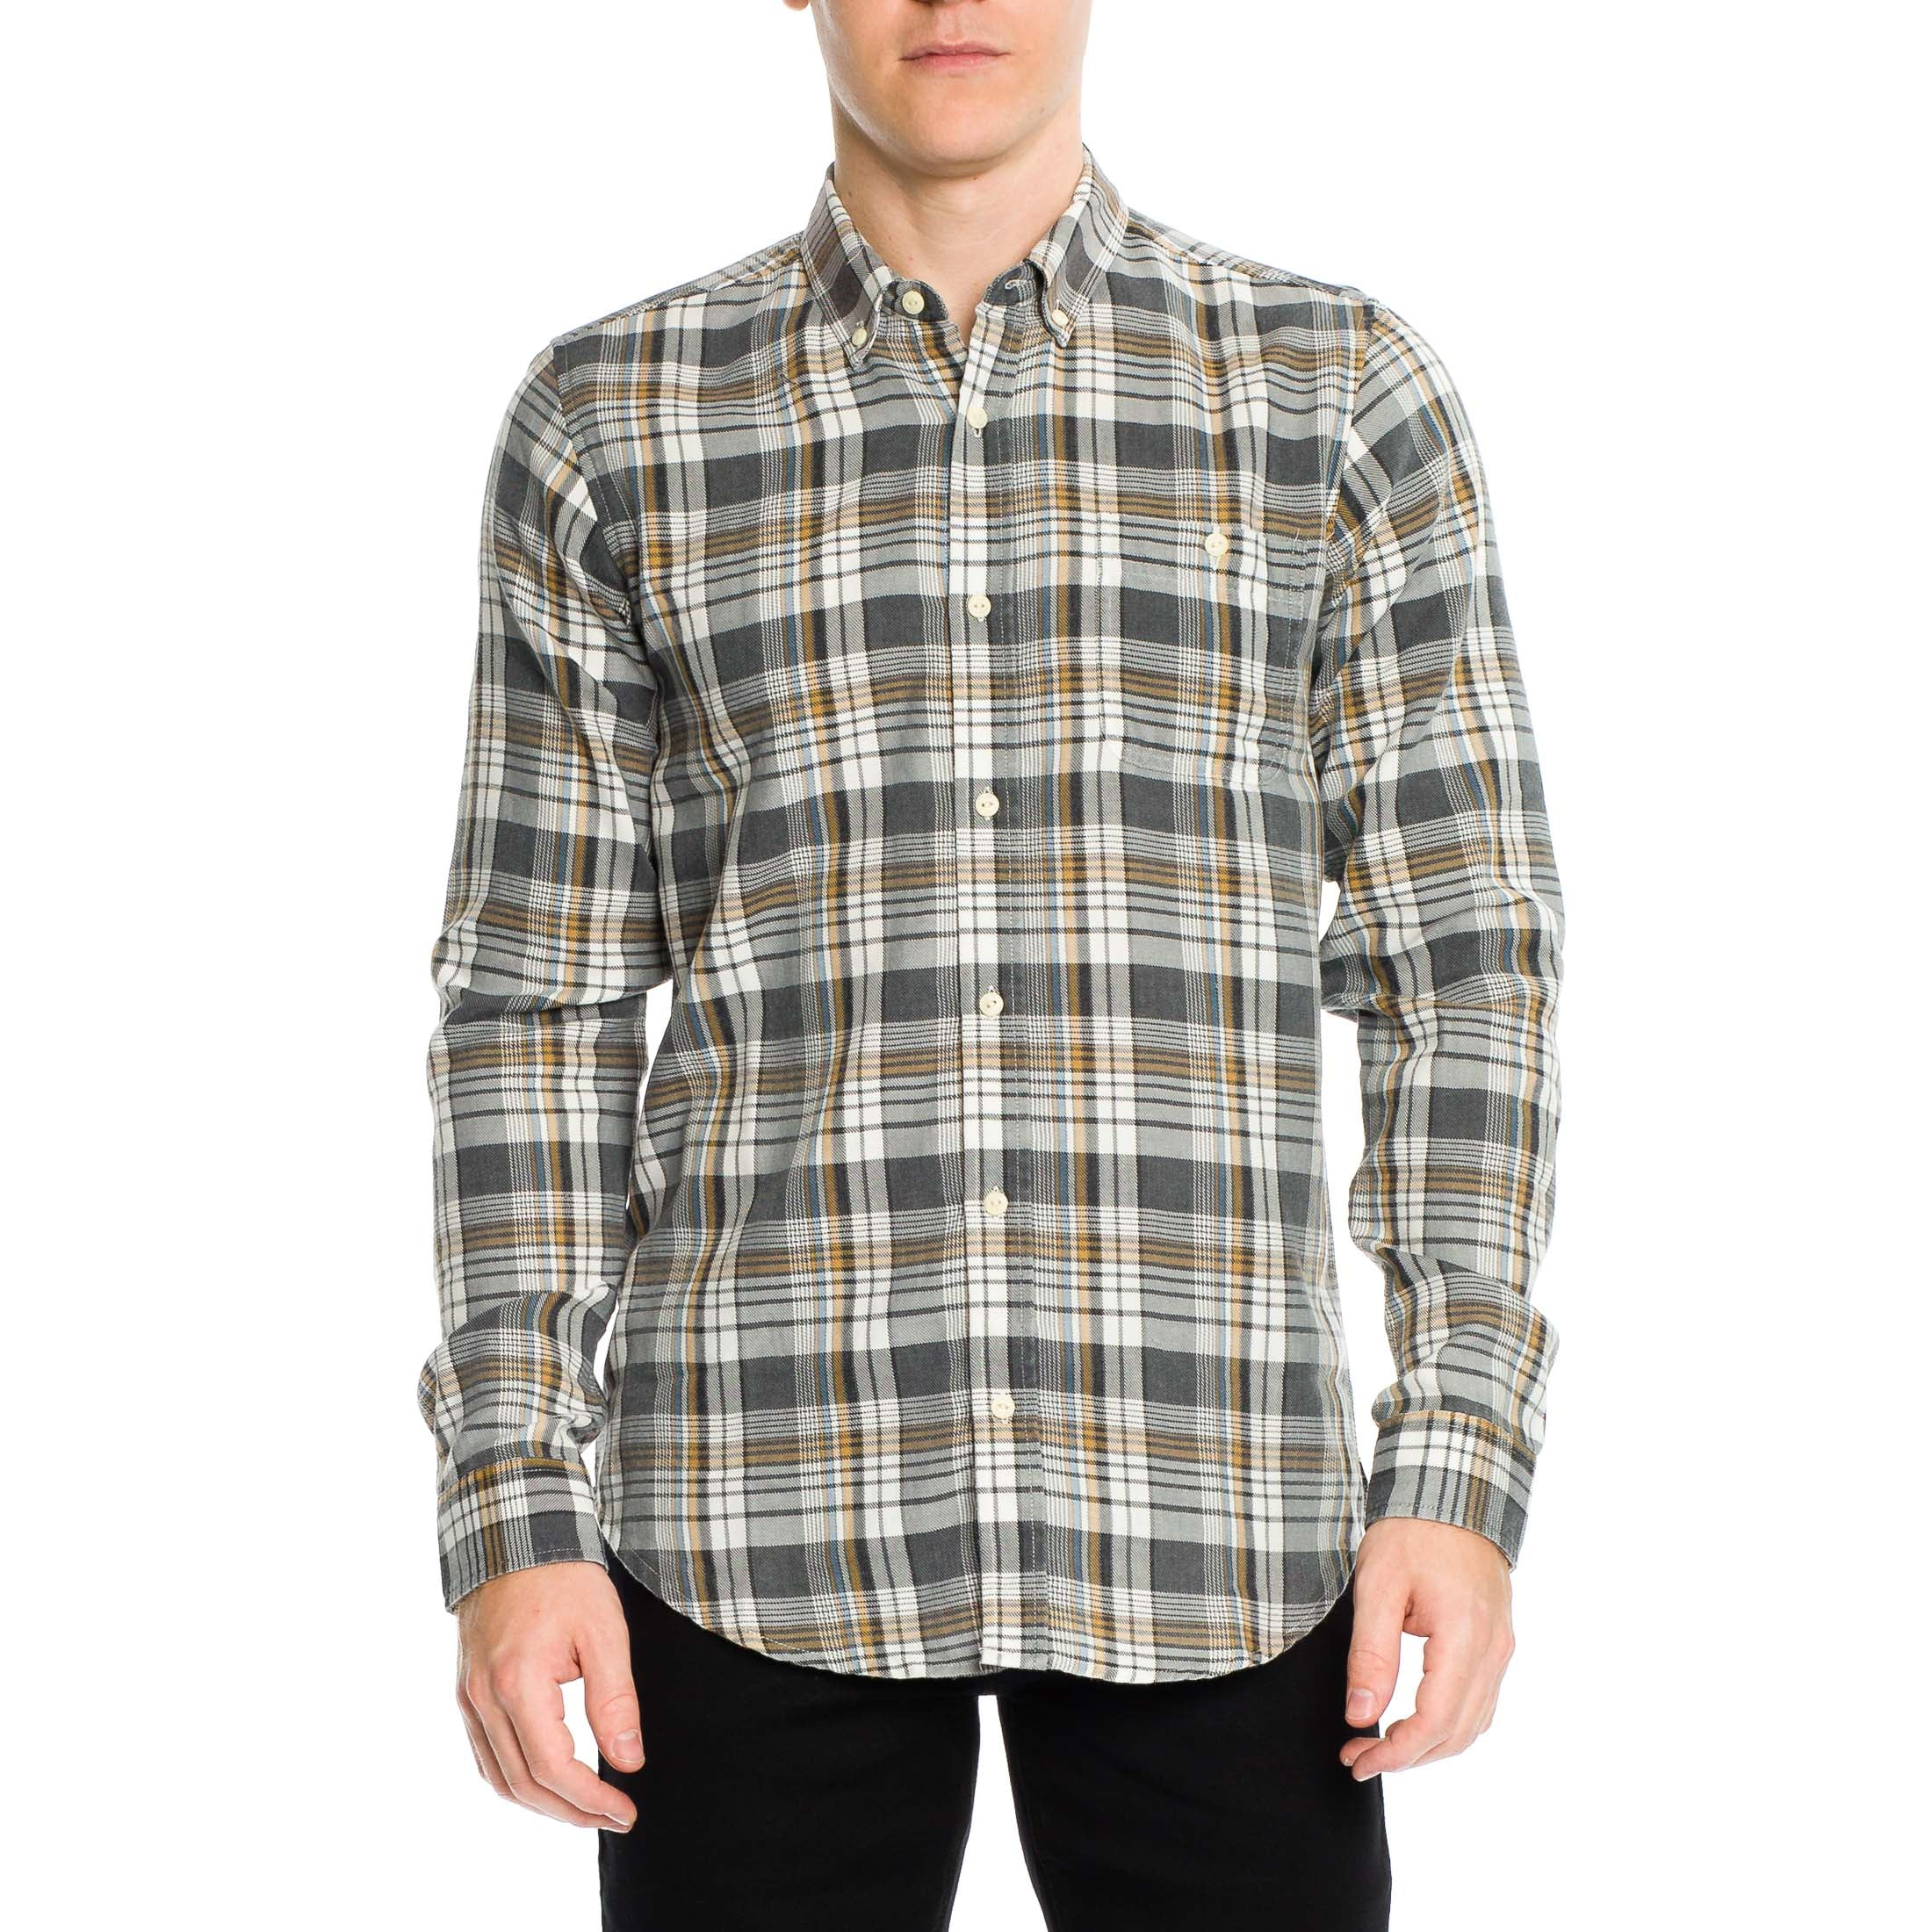 Highgarden Shirt - Black - Ezekiel Clothing